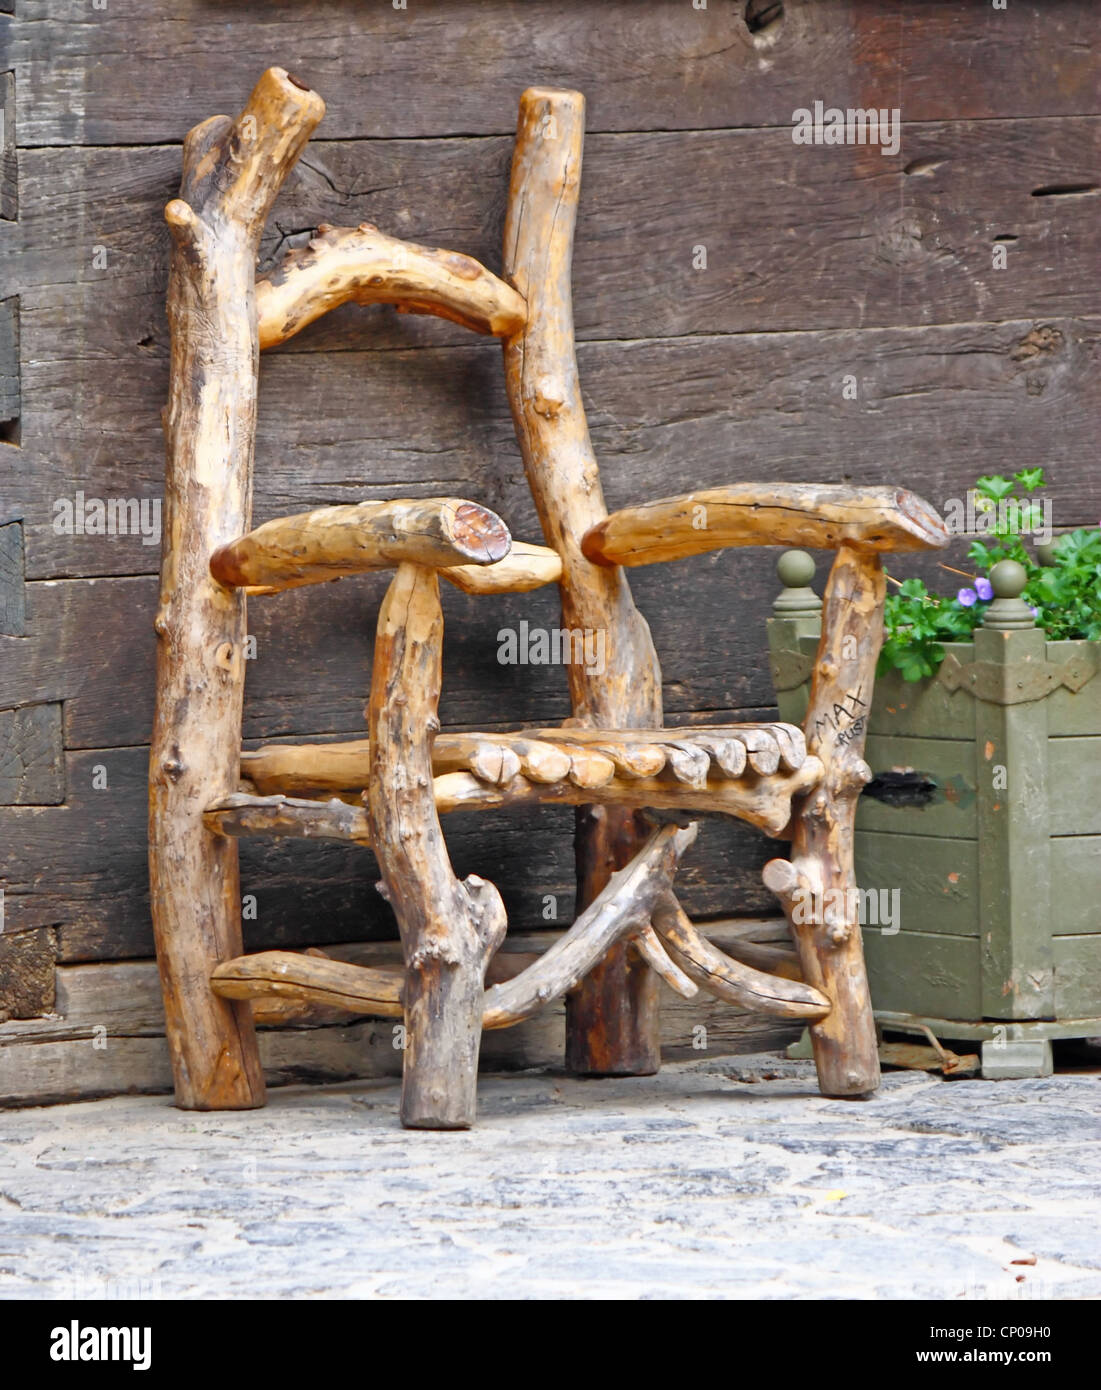 An Unusual Chair Made From Branches   Stock Image